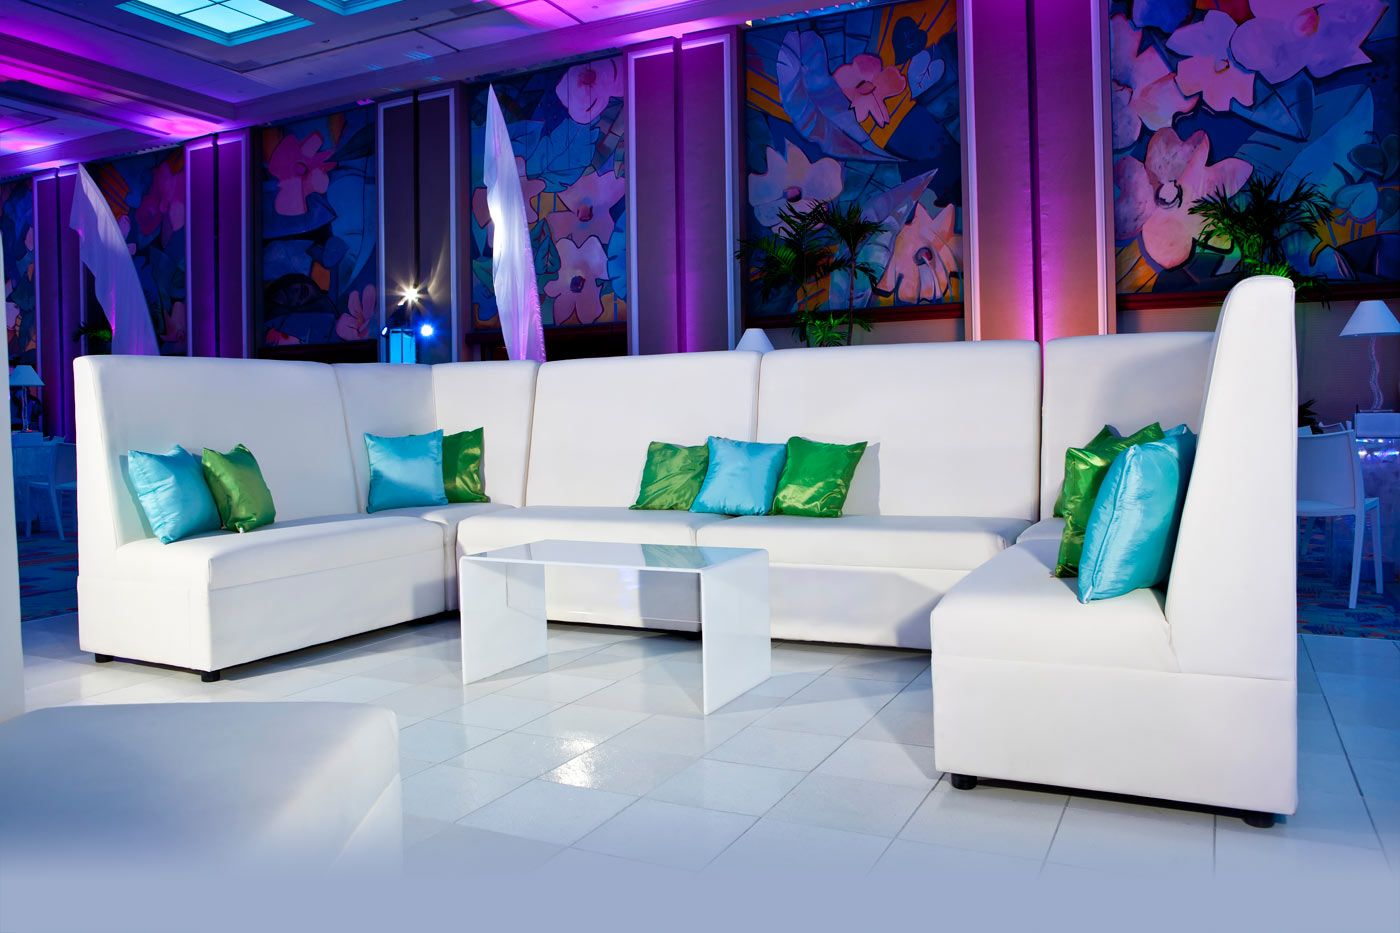 Event Furniture Rentals In Chicago, Chicago Event Furnishings, Chicago  Lounge Furniture Rentals For Corporate Events, Conferences U0026 Parties In  Chicago, Il